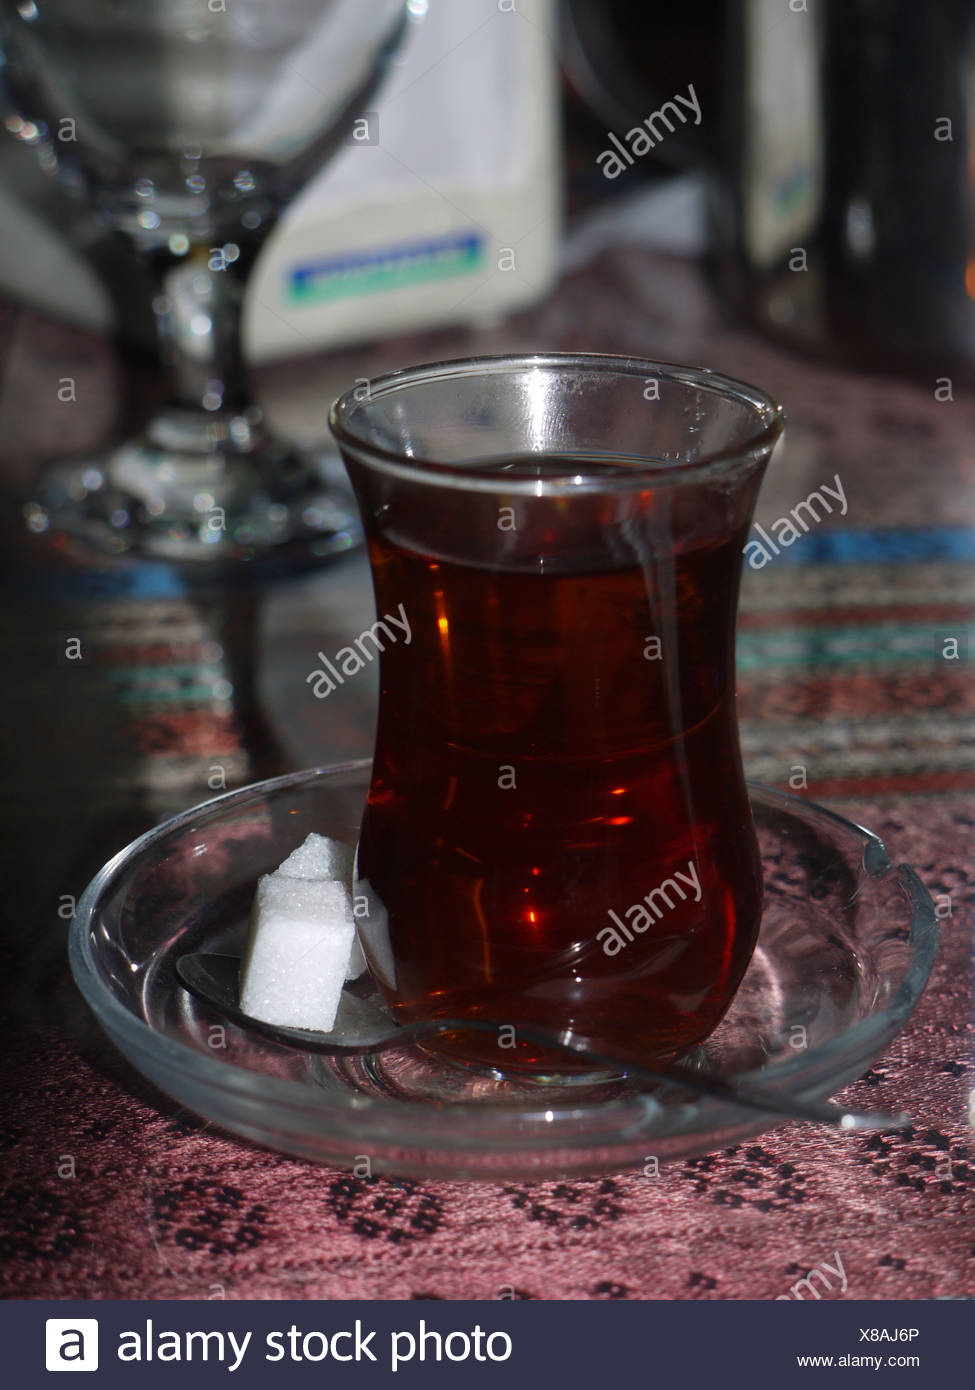 A glass of strong Turkish tea with lumps of sugar - Stock Image